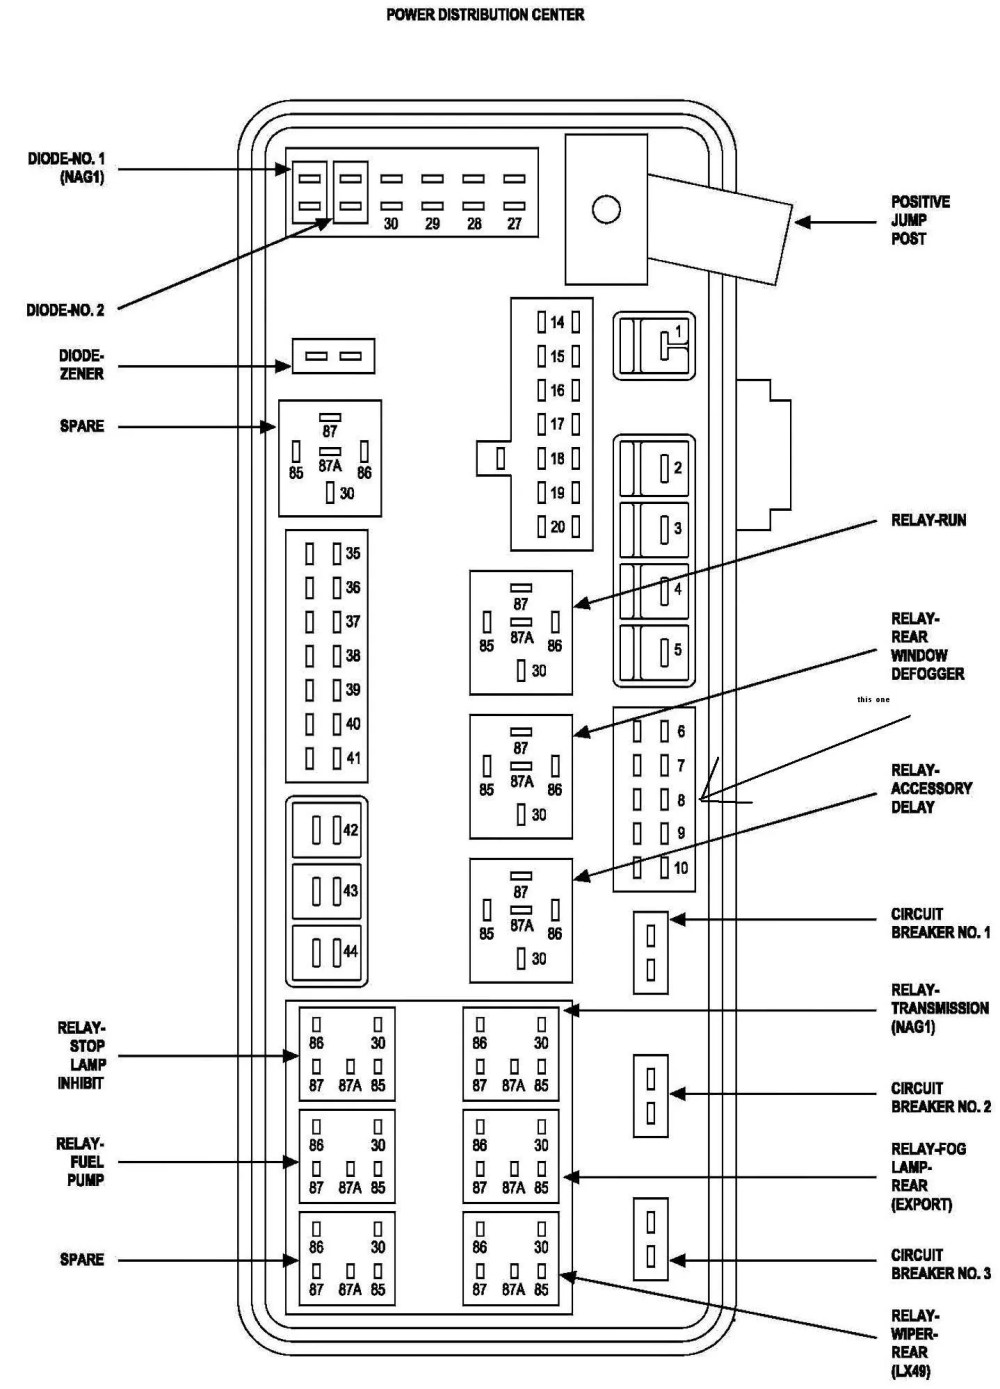 medium resolution of dodge intrepid fuse diagram wiring diagram post 2002 dodge intrepid fuse panel diagram